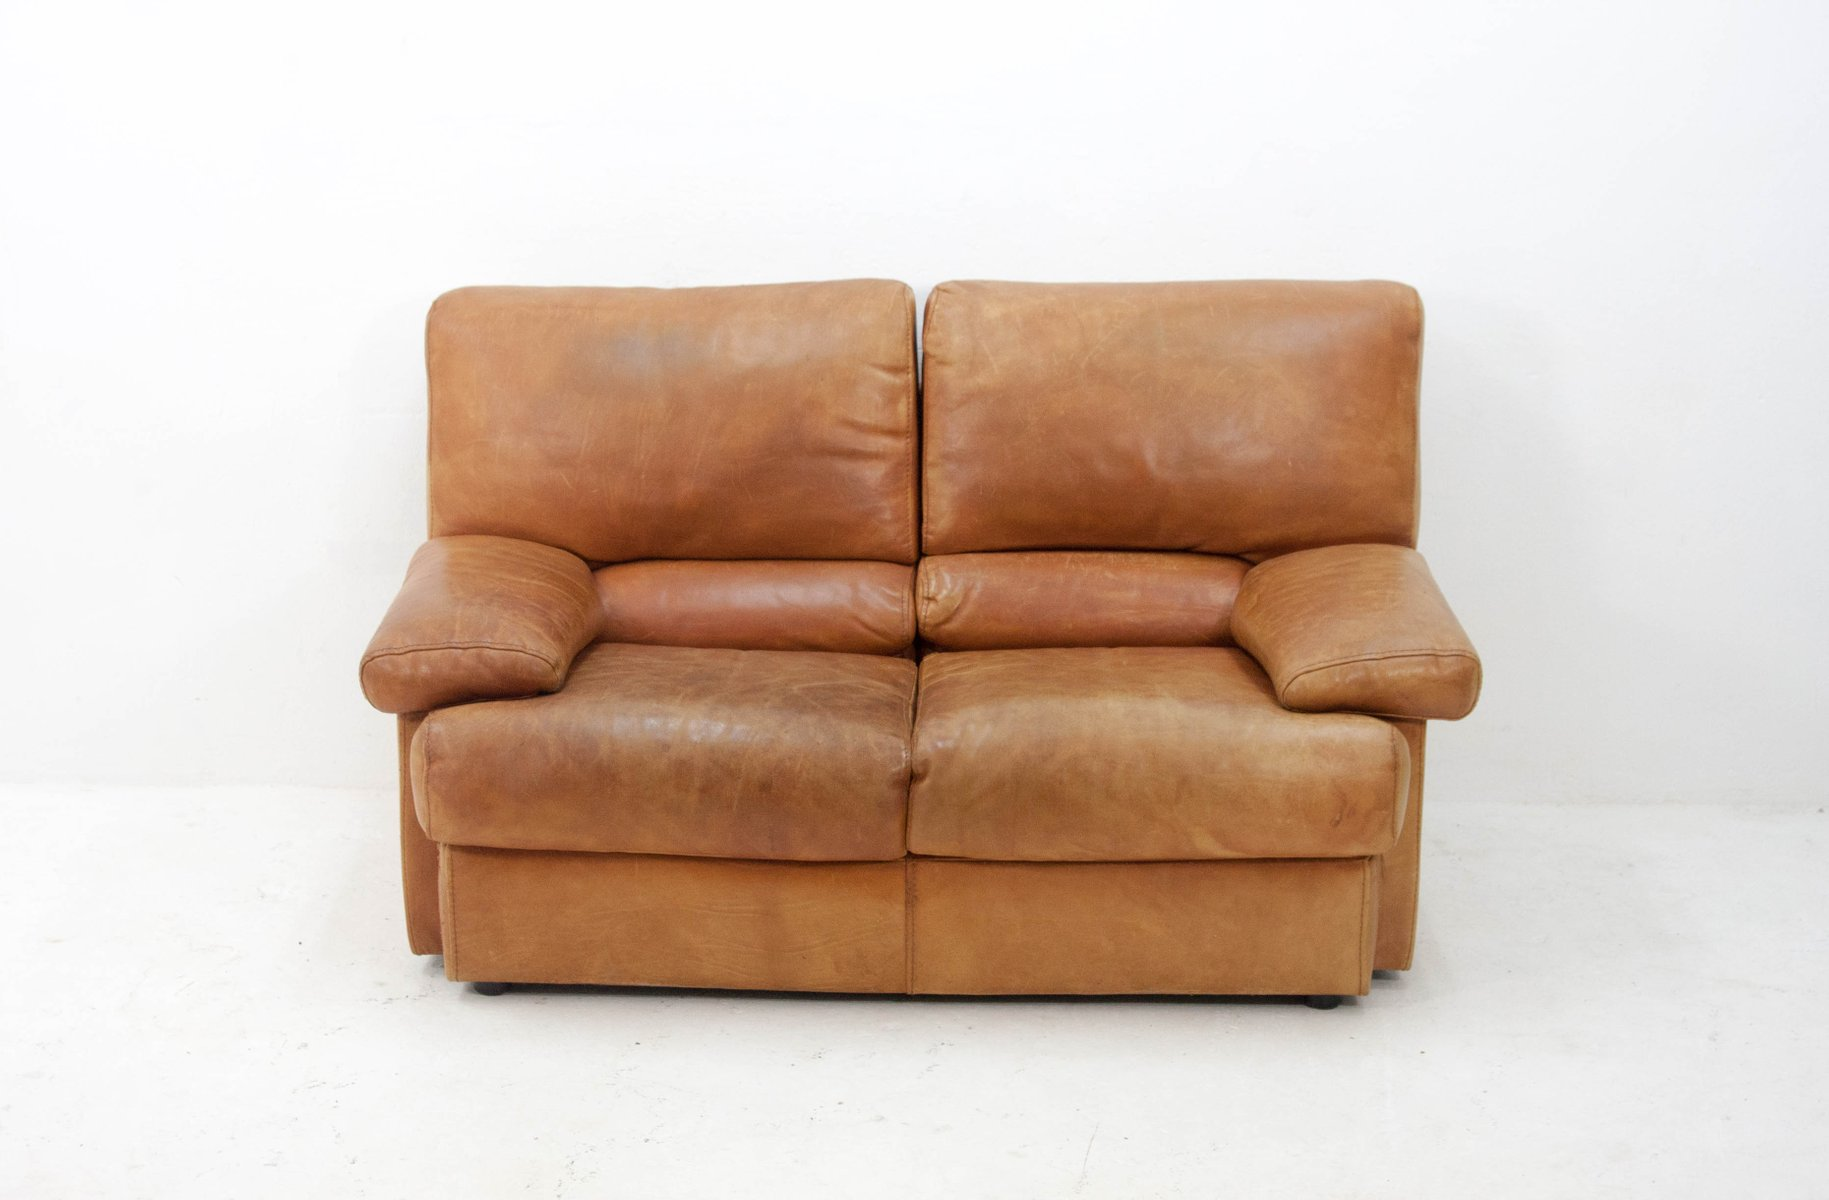 Vintage 2-Seater Butterscotch Leather Sofa from Cierre Imbottiti for ...